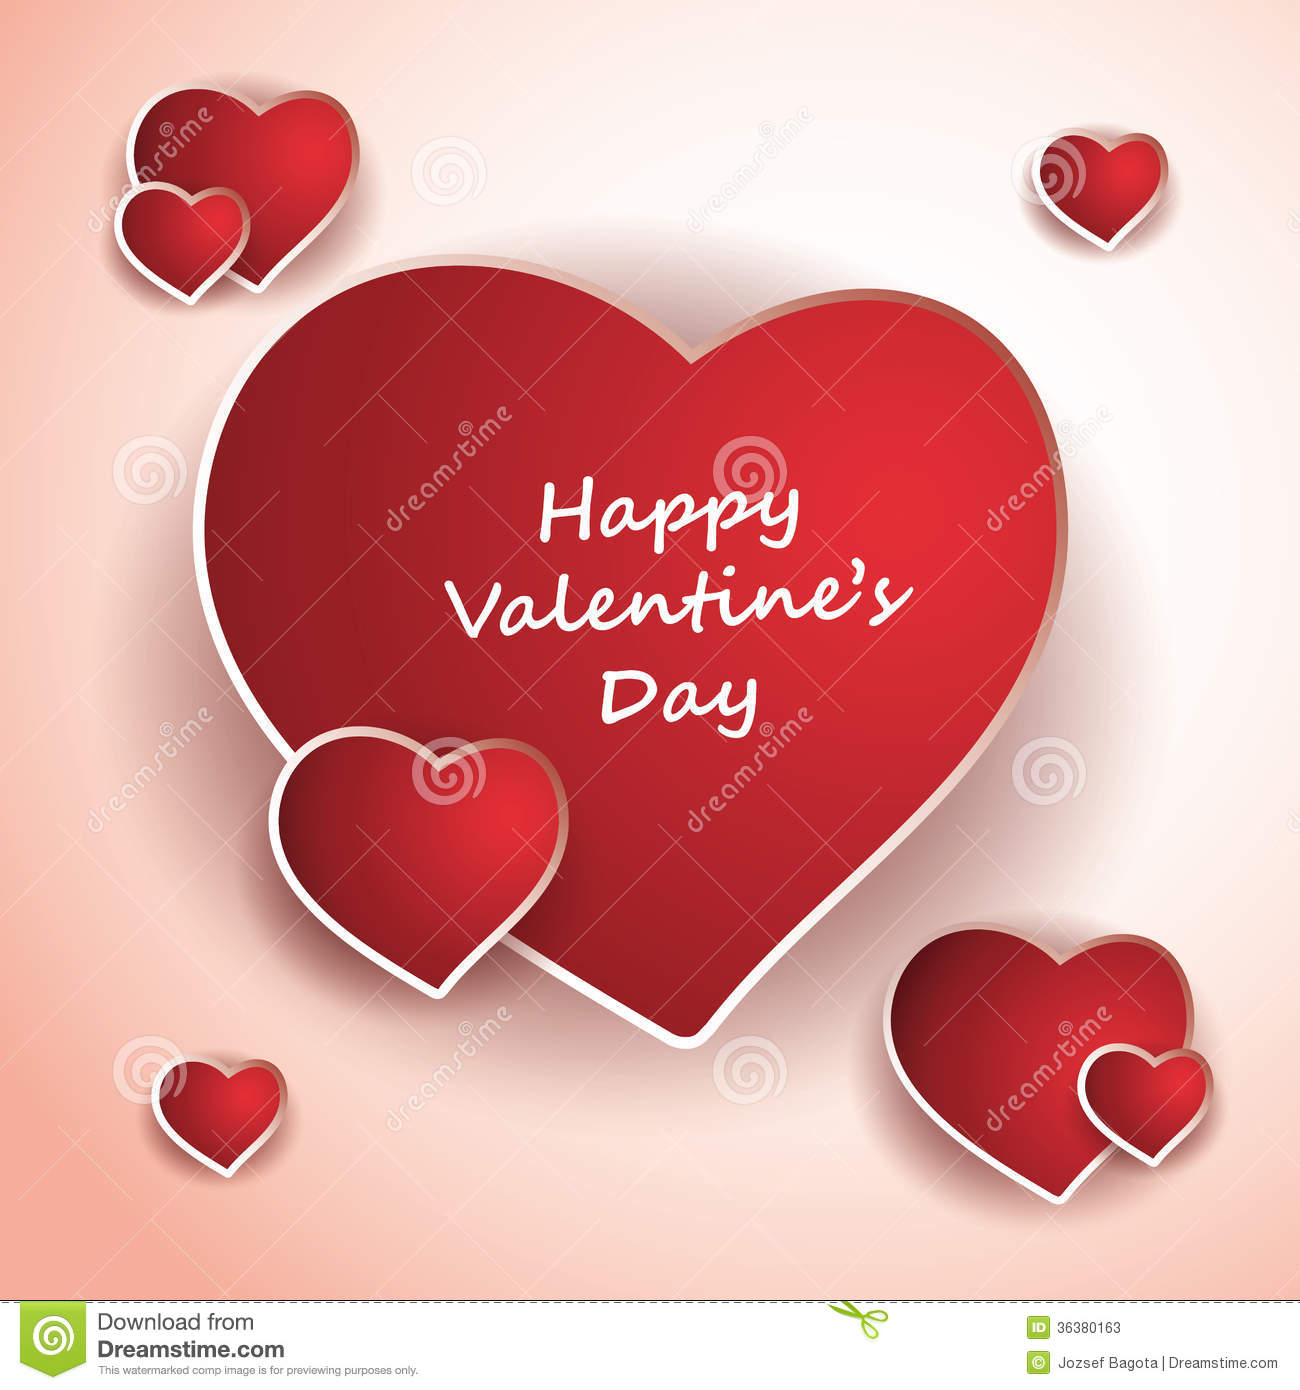 Valentine's Day Card Or Cover Design Stock Photos - Image: 36380163